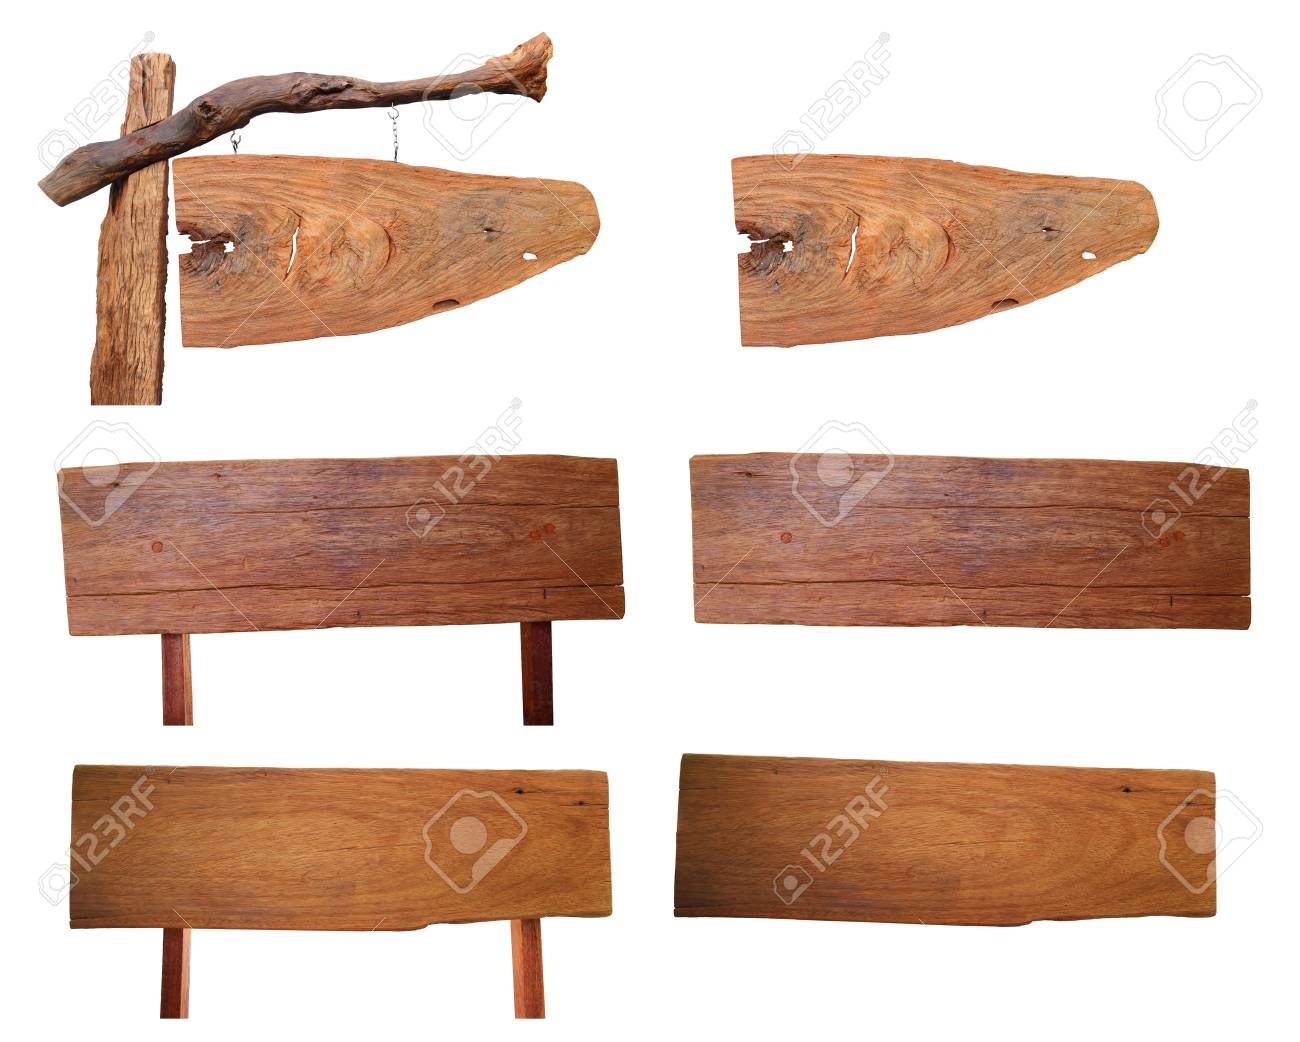 wood sign isolated on background, With objects with clipping paths for design work Stock Photo - 19957795